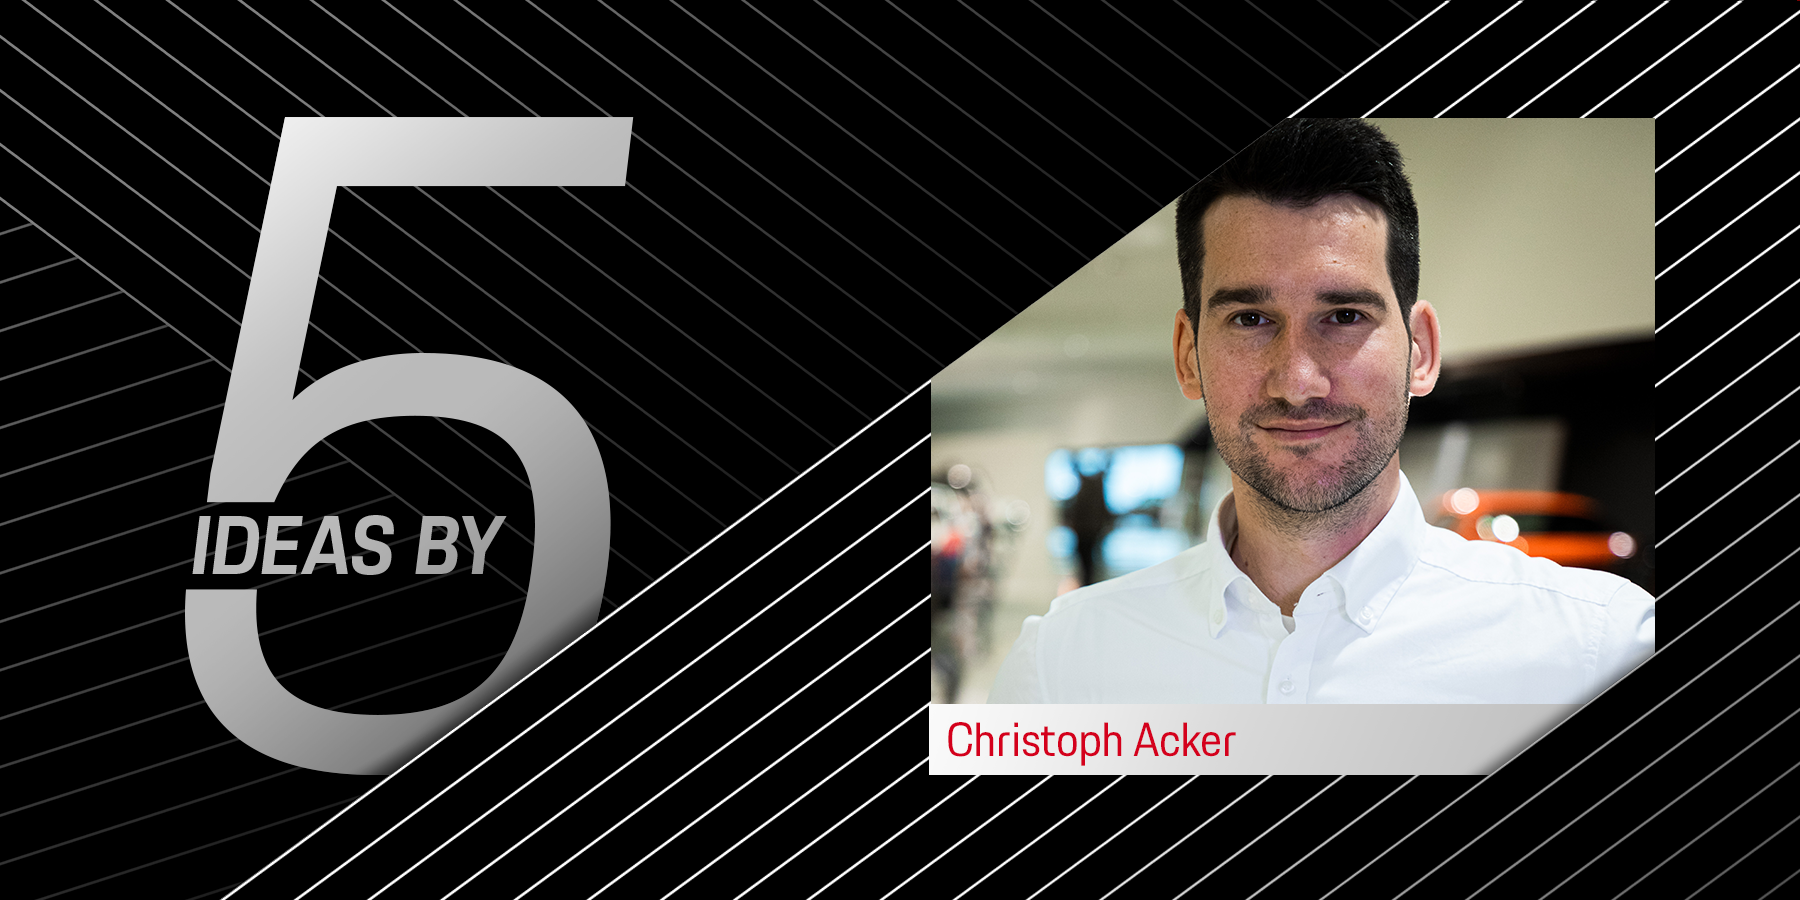 Christoph Acker—Project Lead Innovation Strategy at Porsche.